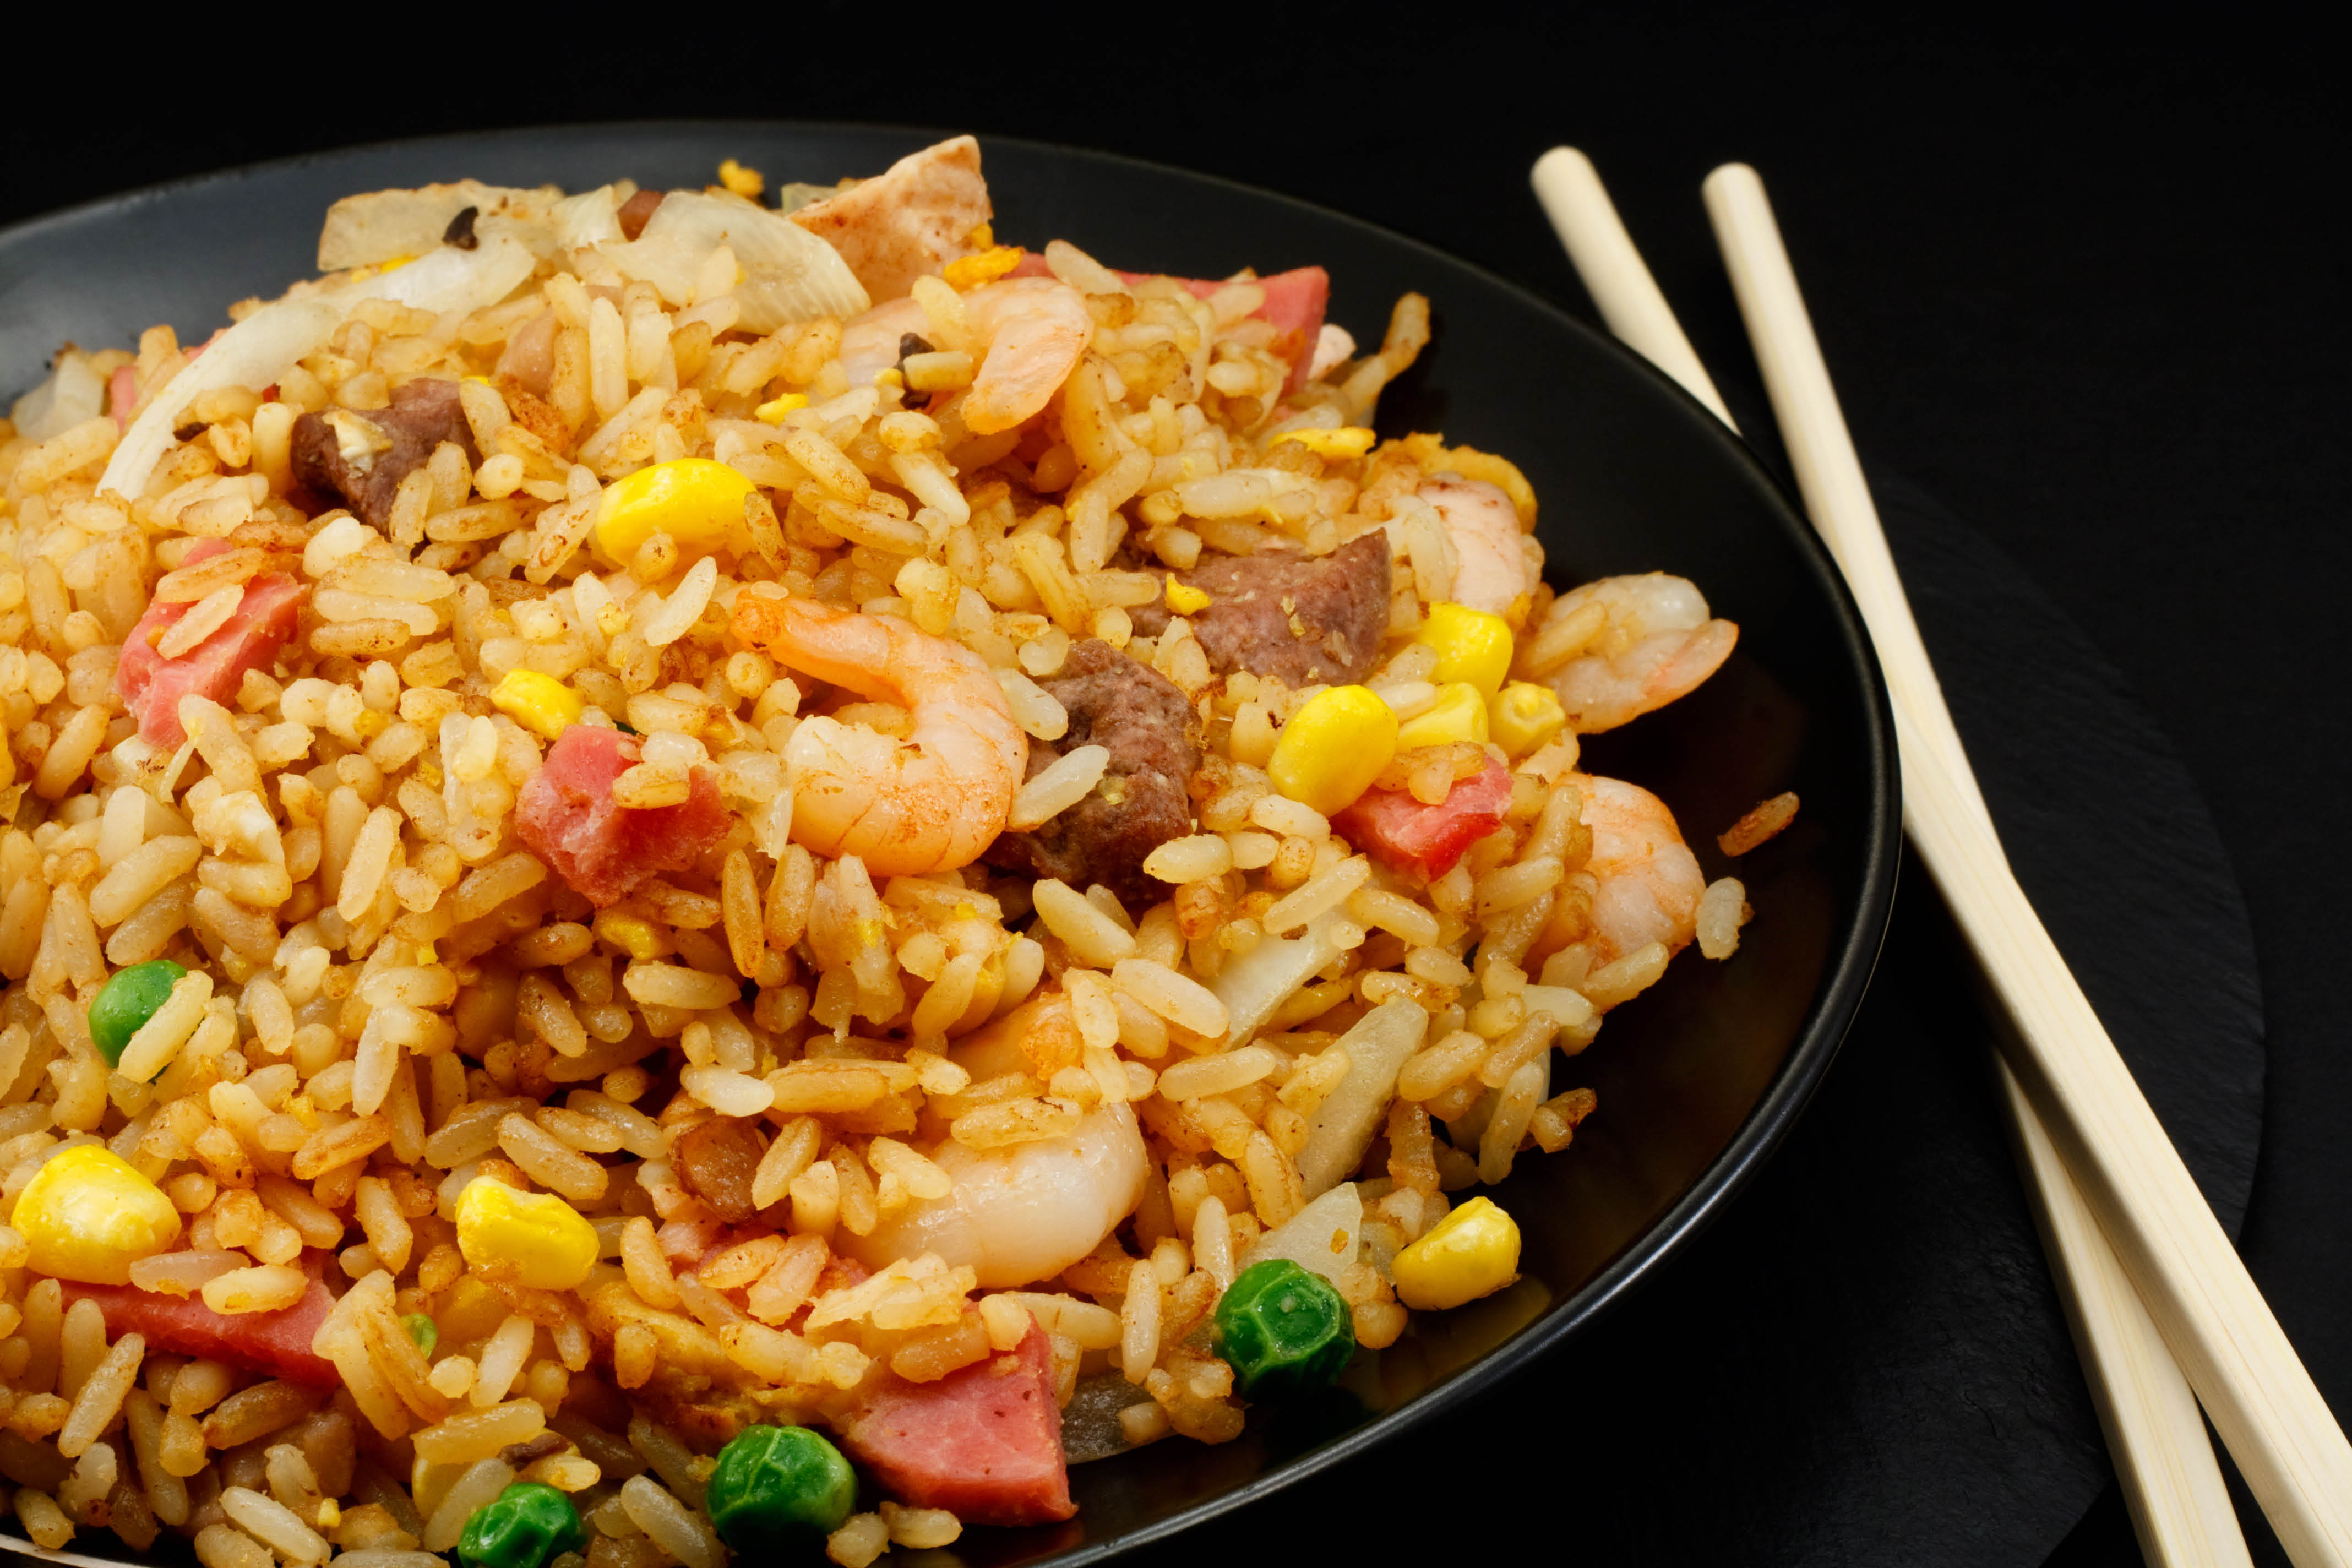 China King,landsdale pa,Chinese food near me,chinese food in lansdale pa, chinese, fried rice, egg roll, low mein